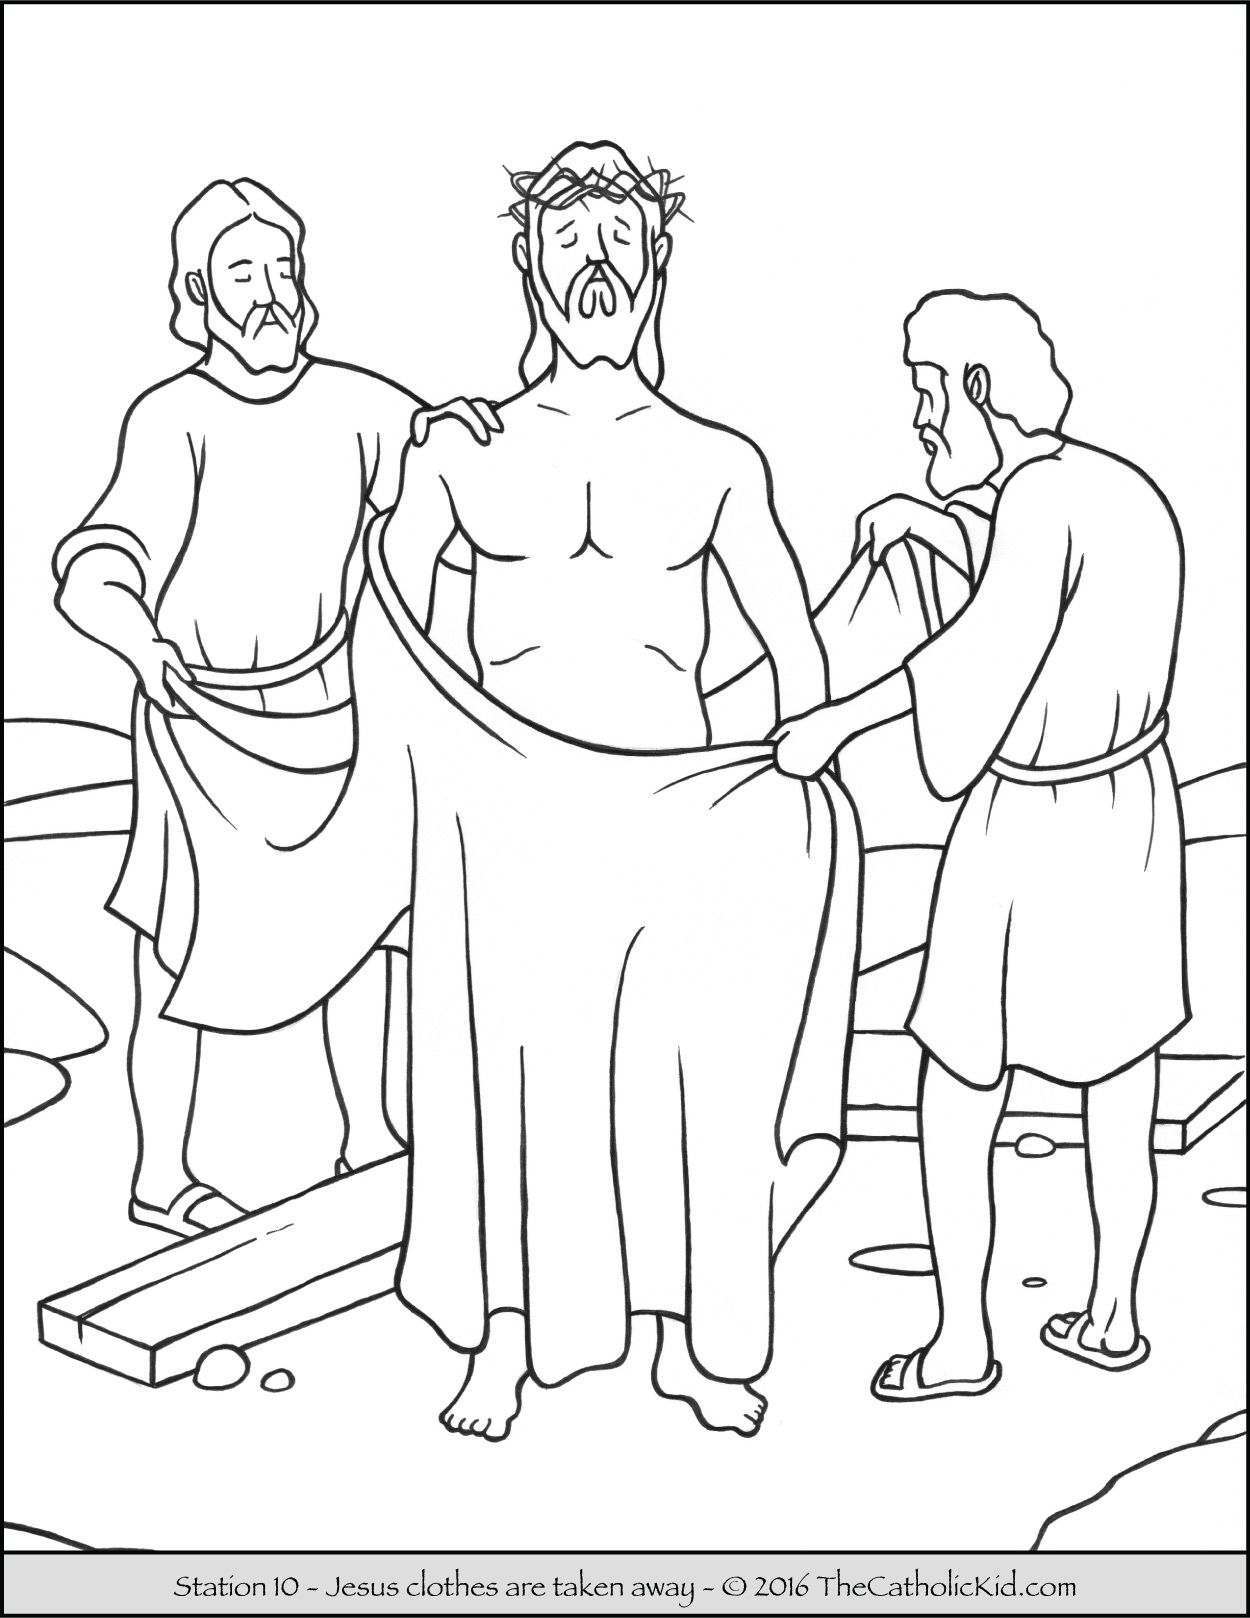 stations of the cross coloring pages 10 jesus clothes are taken